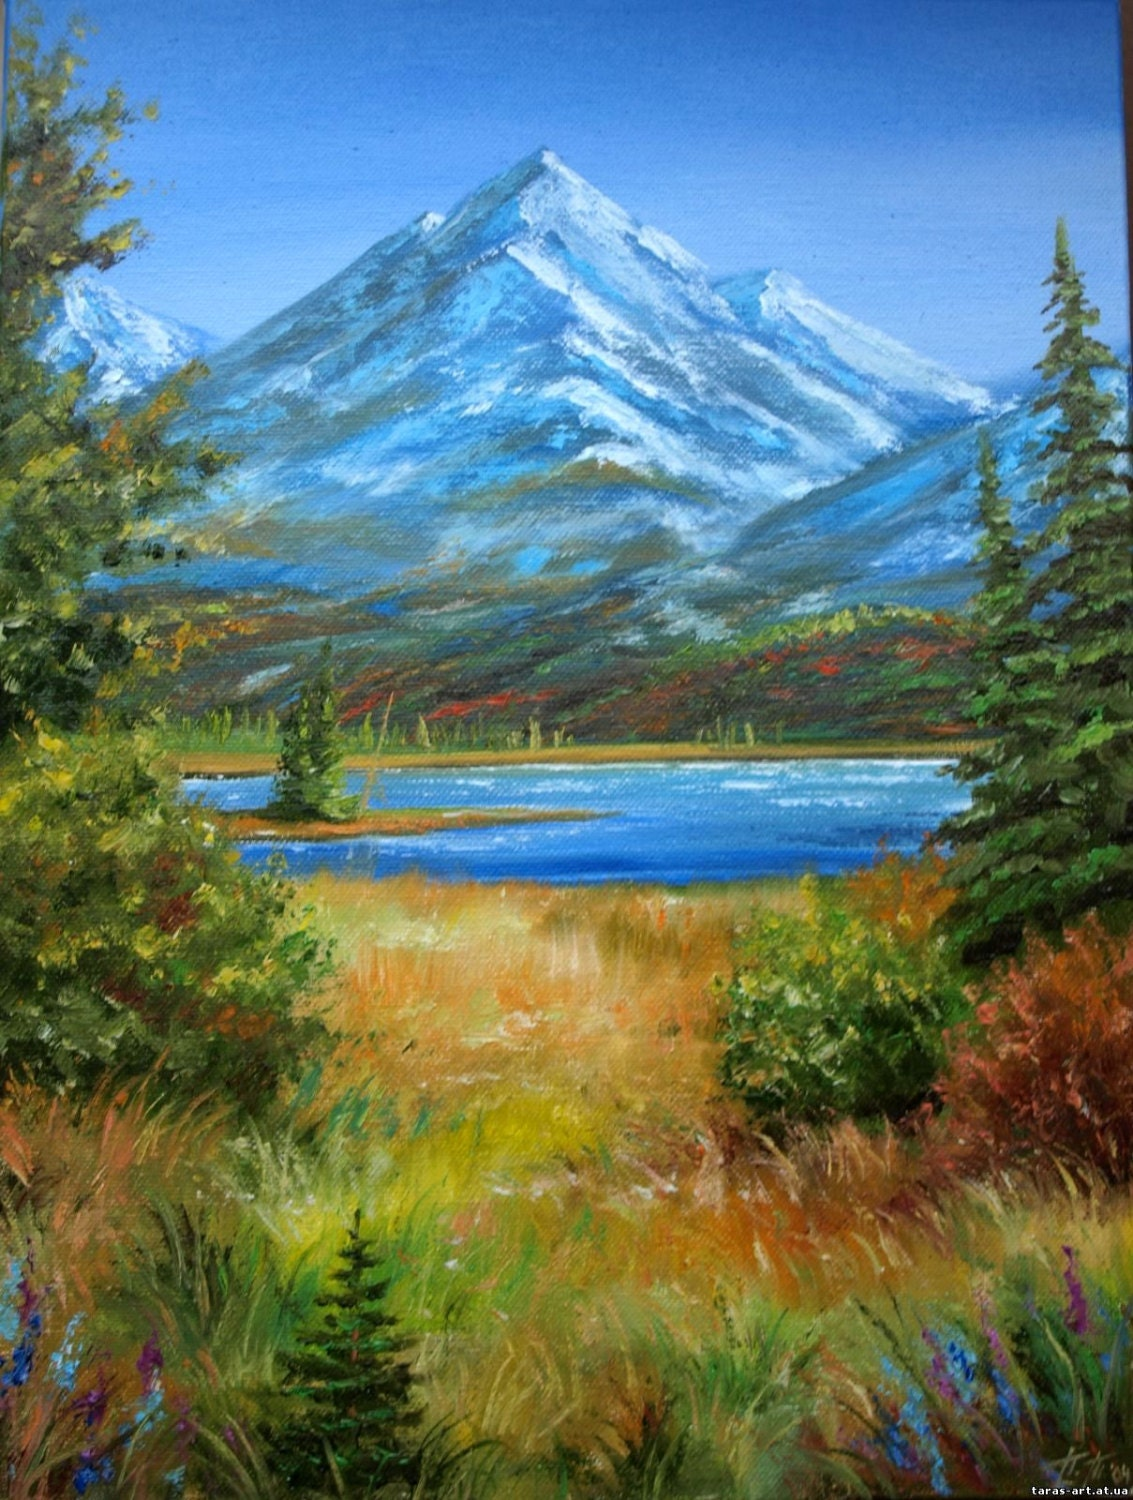 Mountain art oil painting 12x16in landscape autumn scenery for Oil painting scenery